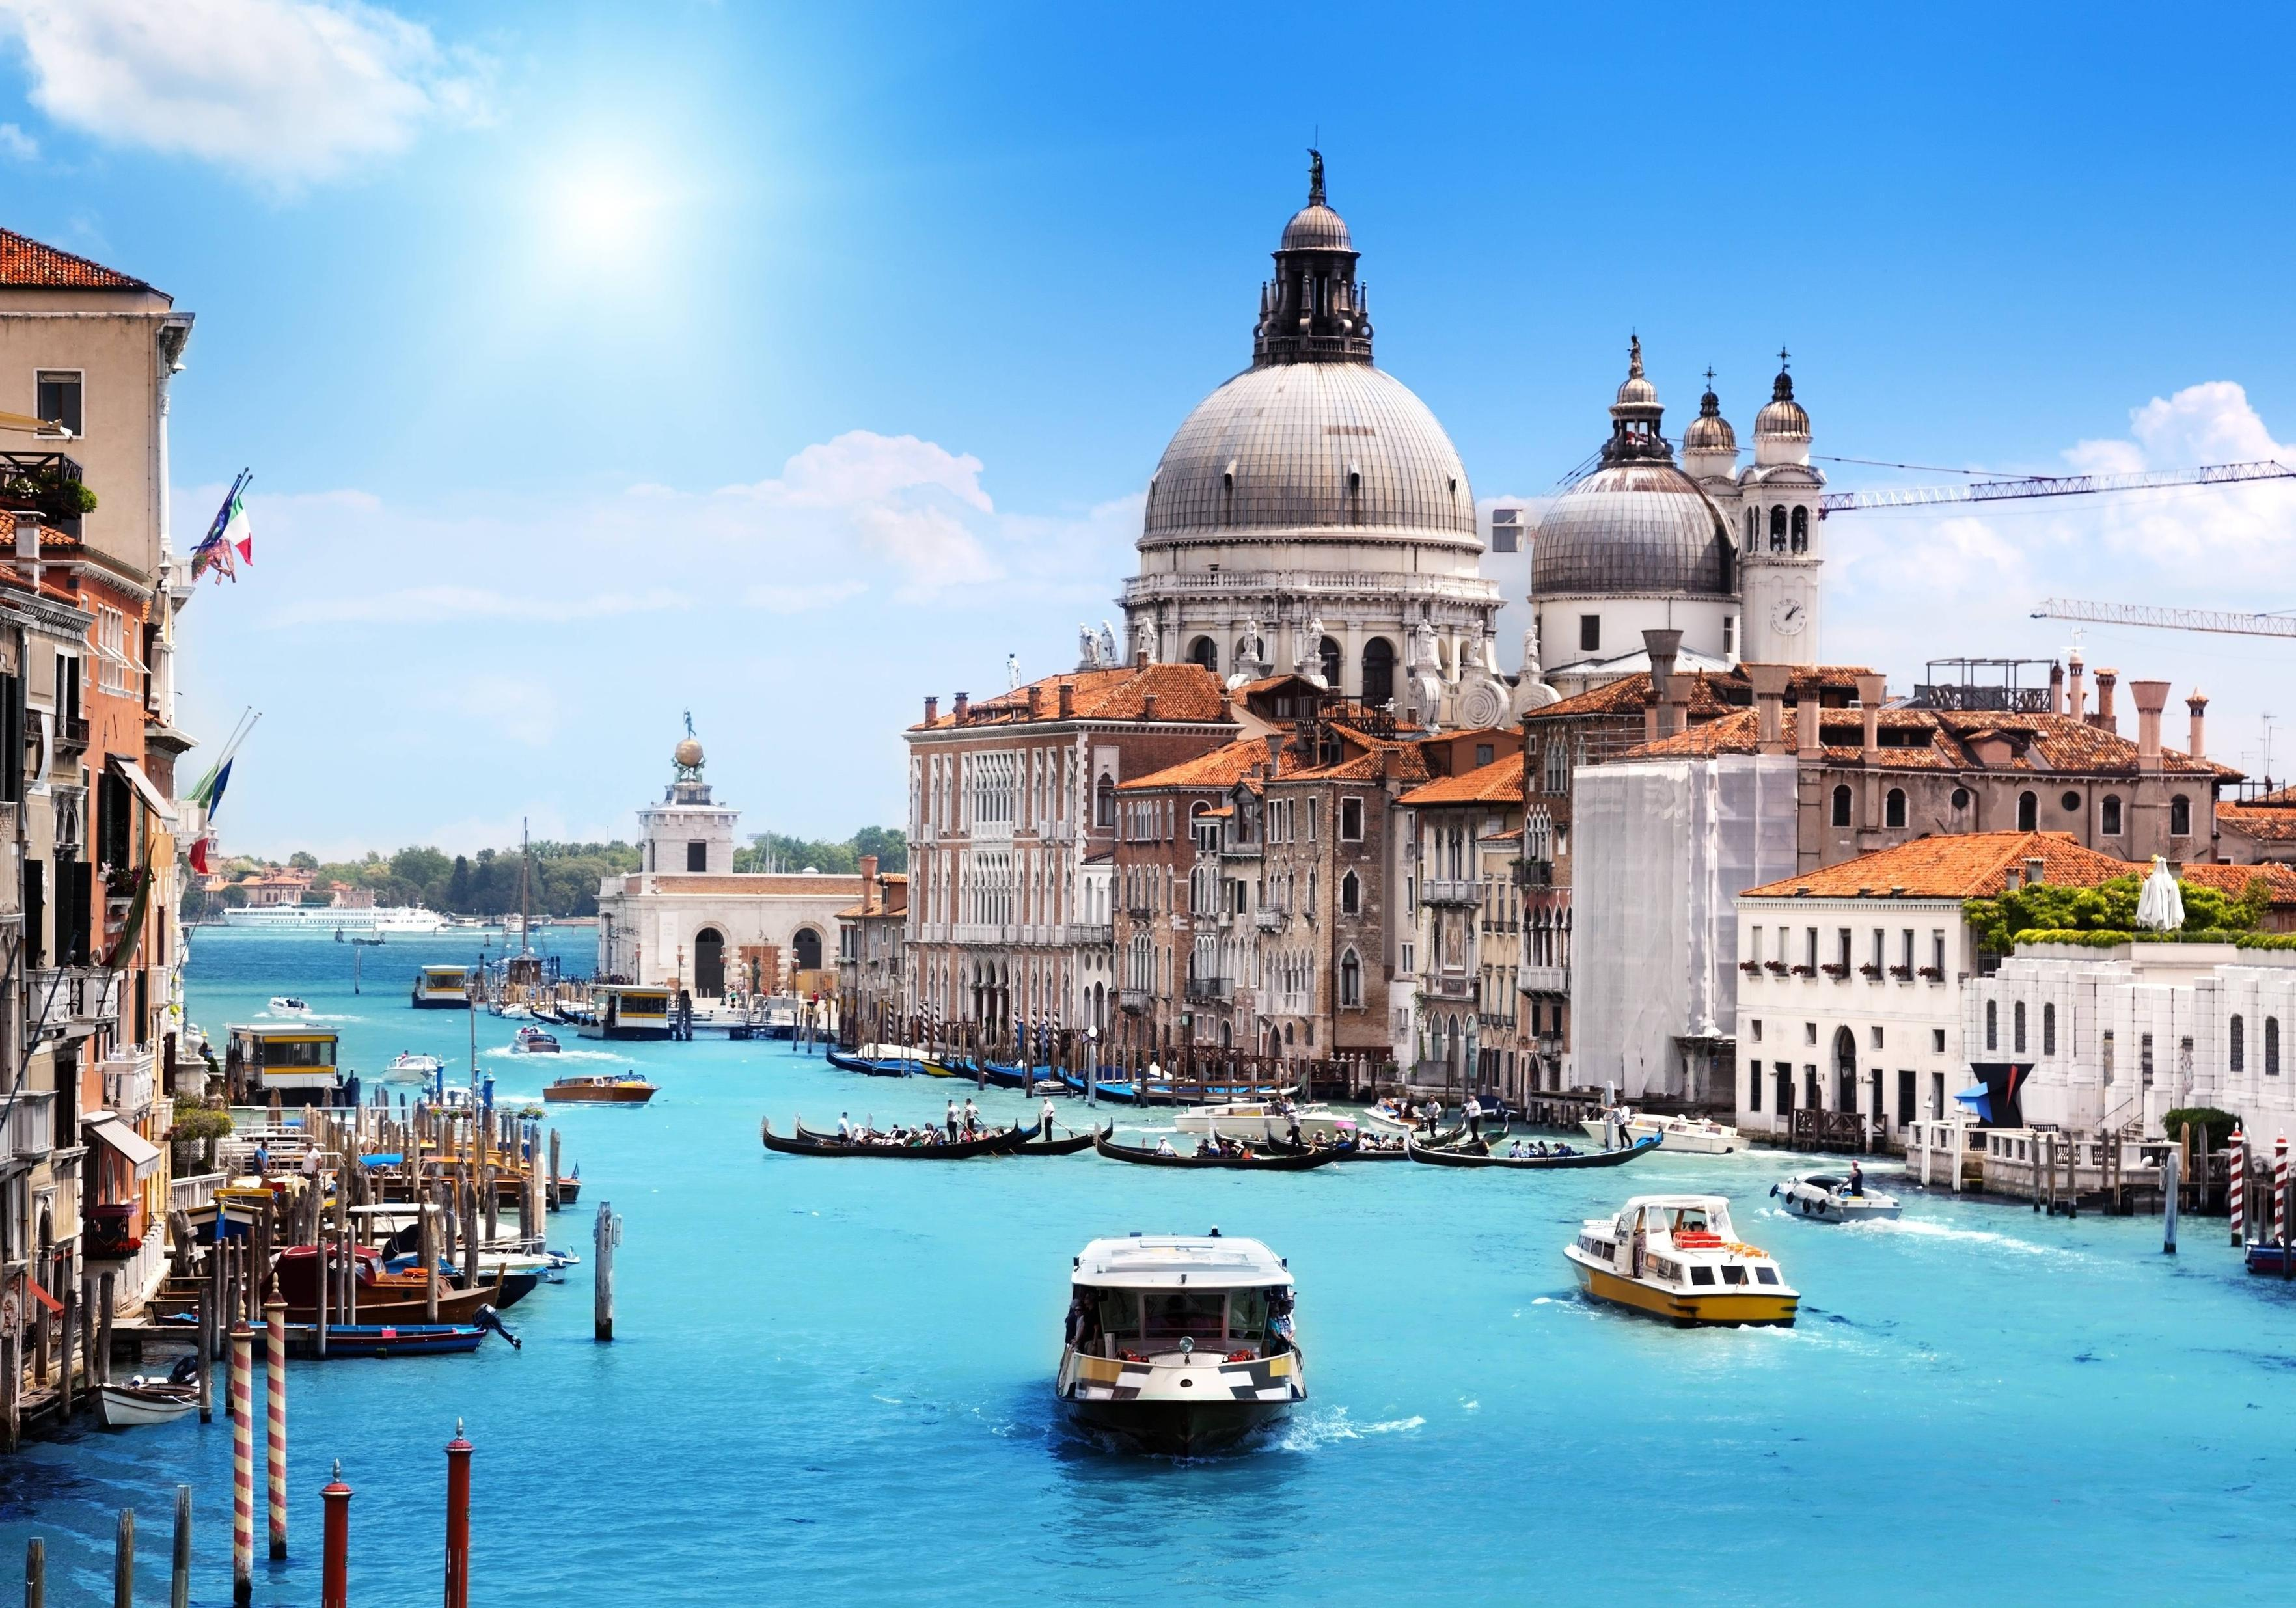 Download wallpaper Italy, venice, city, Venice free desktop ...